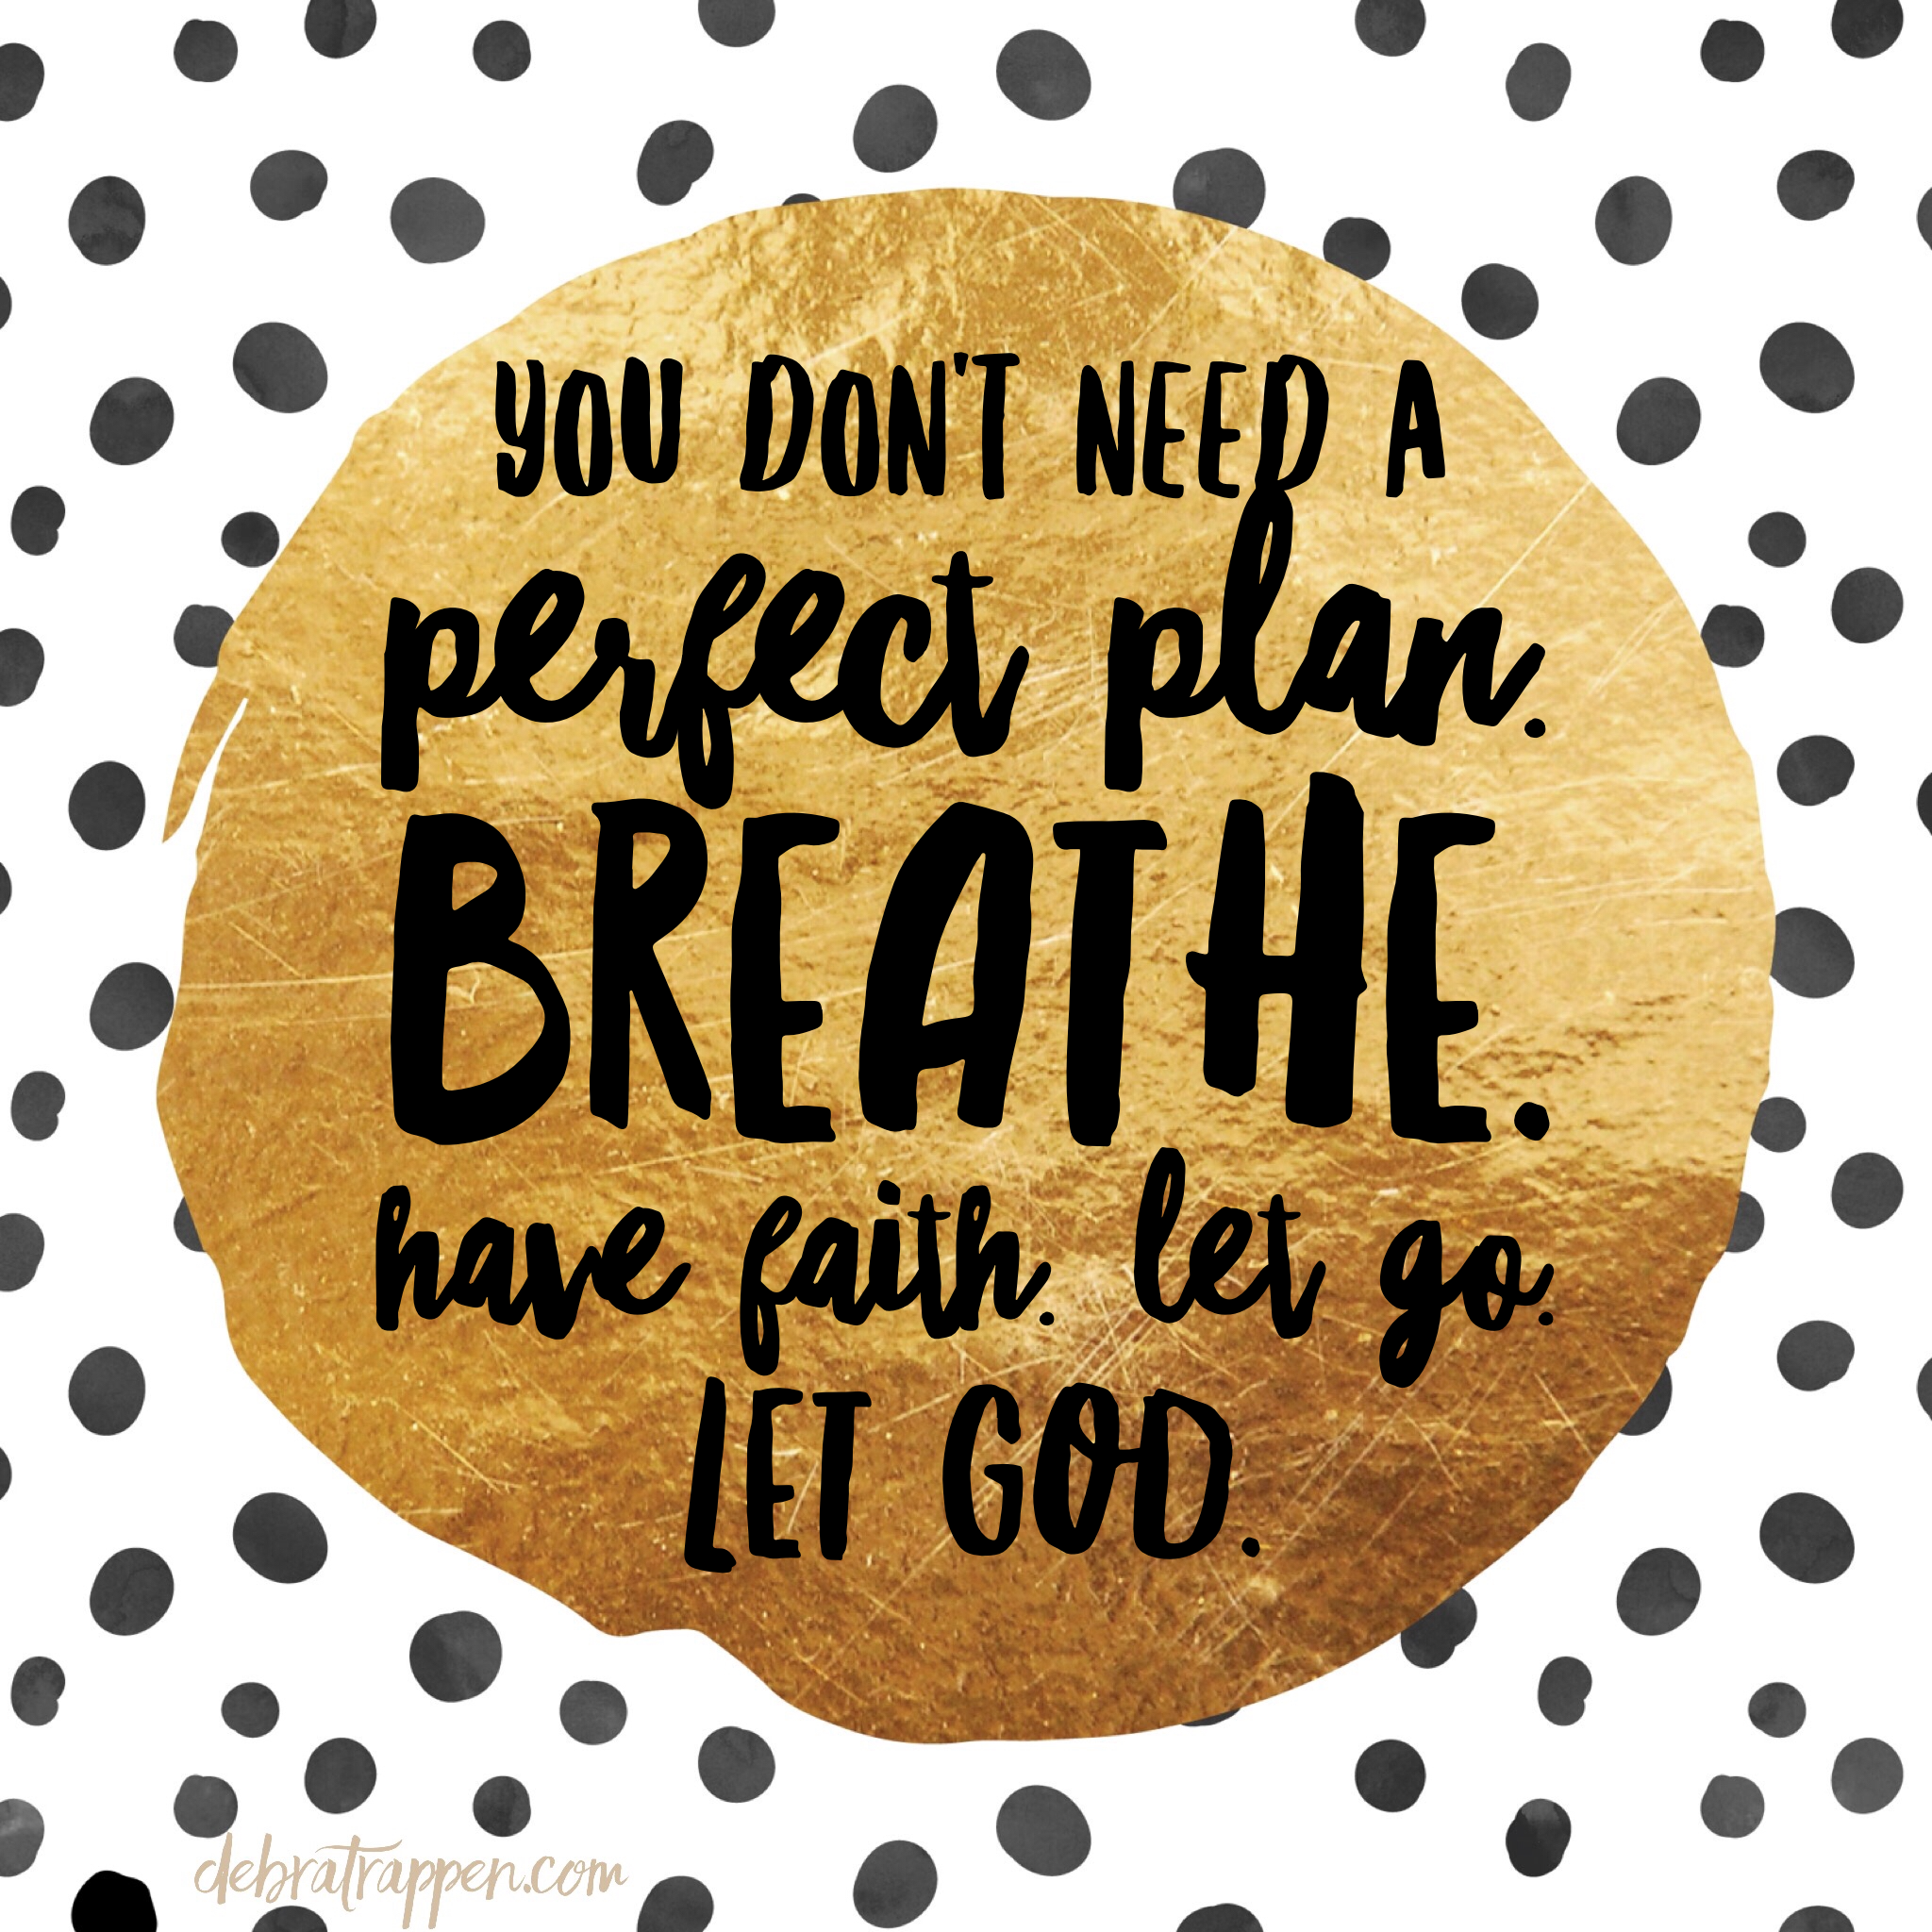 You Don't Need A Perfect Plan. Breathe. Have Faith. Let Go. LET GOD! #FireMeUp11